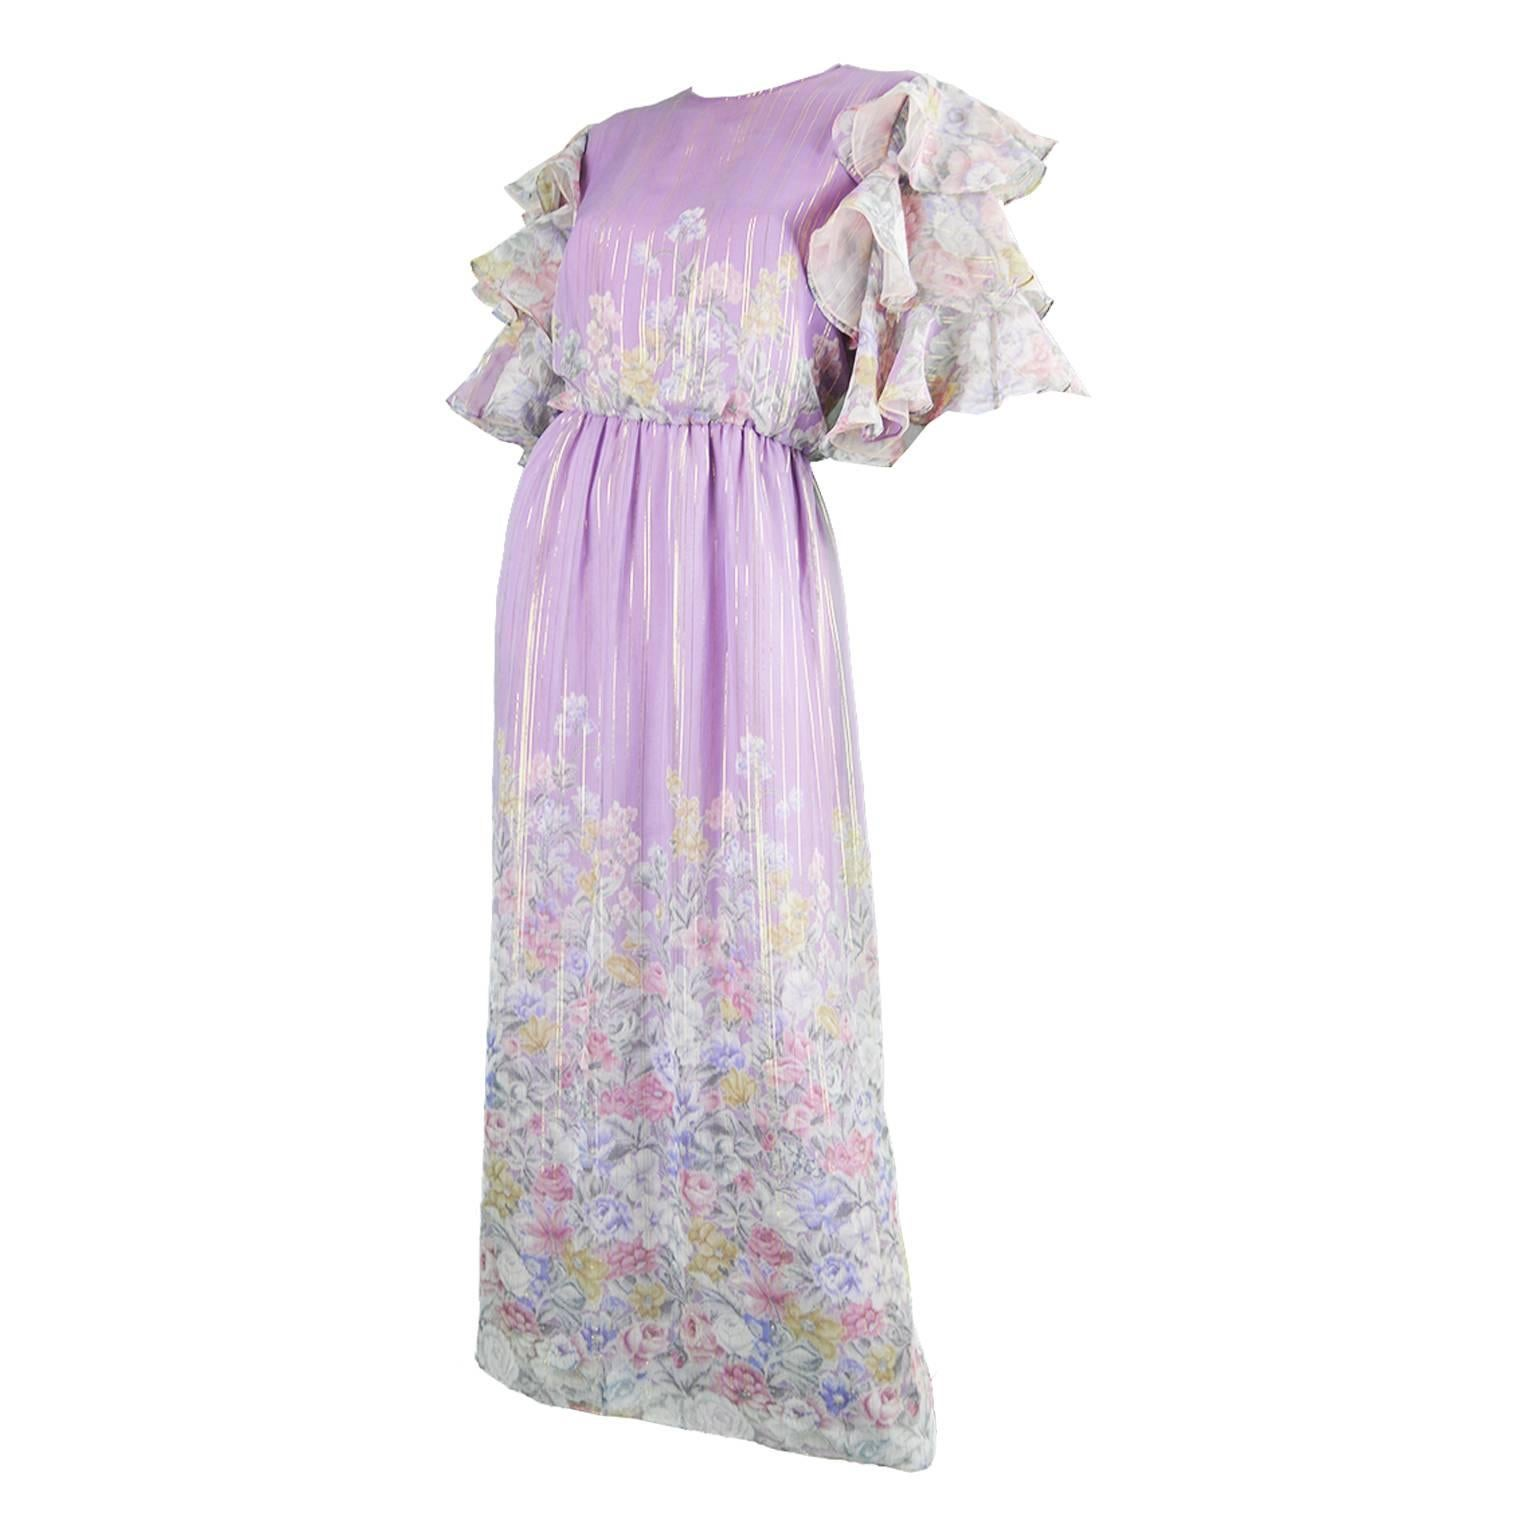 f4ad207fce3 Hanae Mori Purple and Pastel Floral Printed Ruffle Sleeve Maxi Dress ...